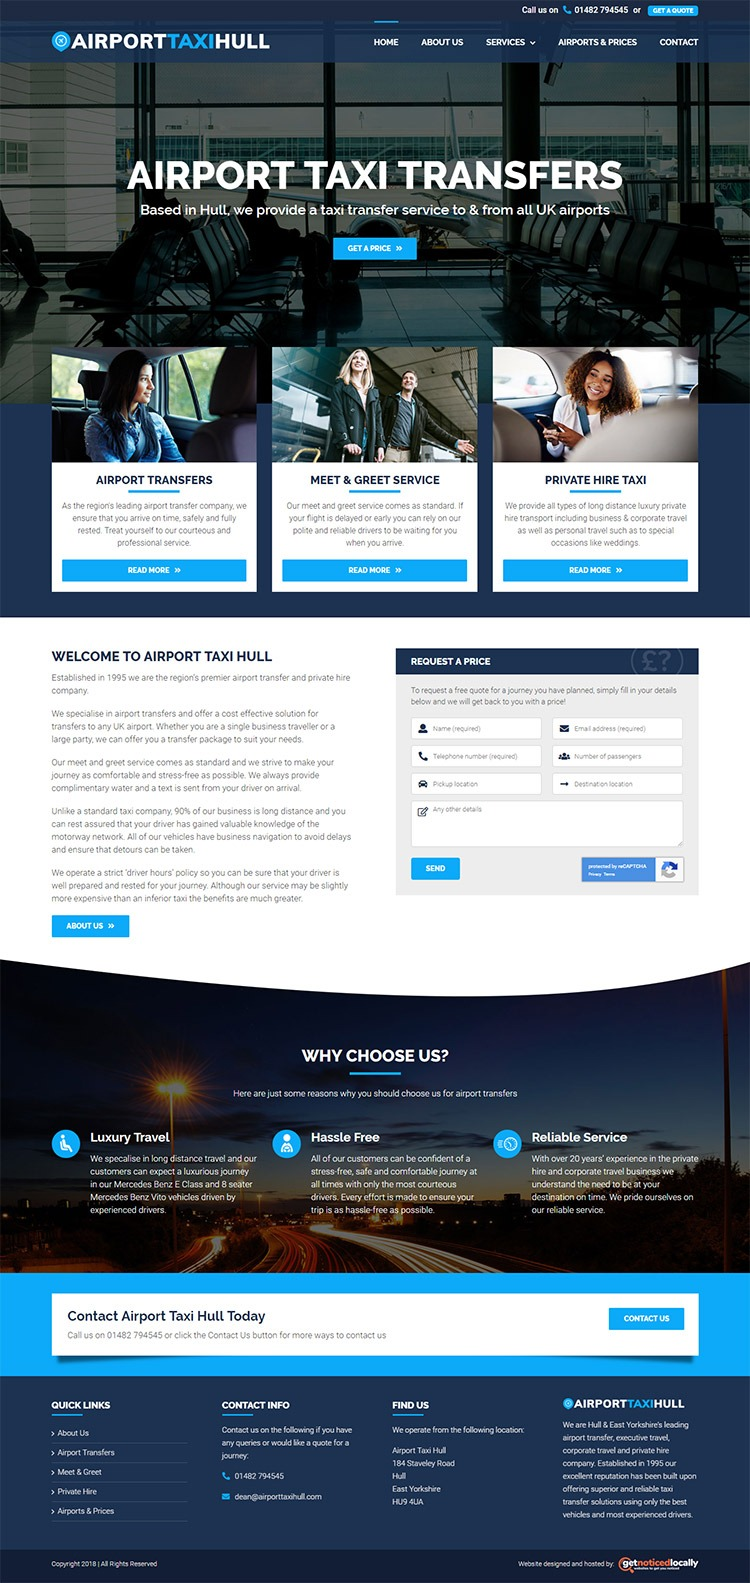 Airport Taxi Hull website layout